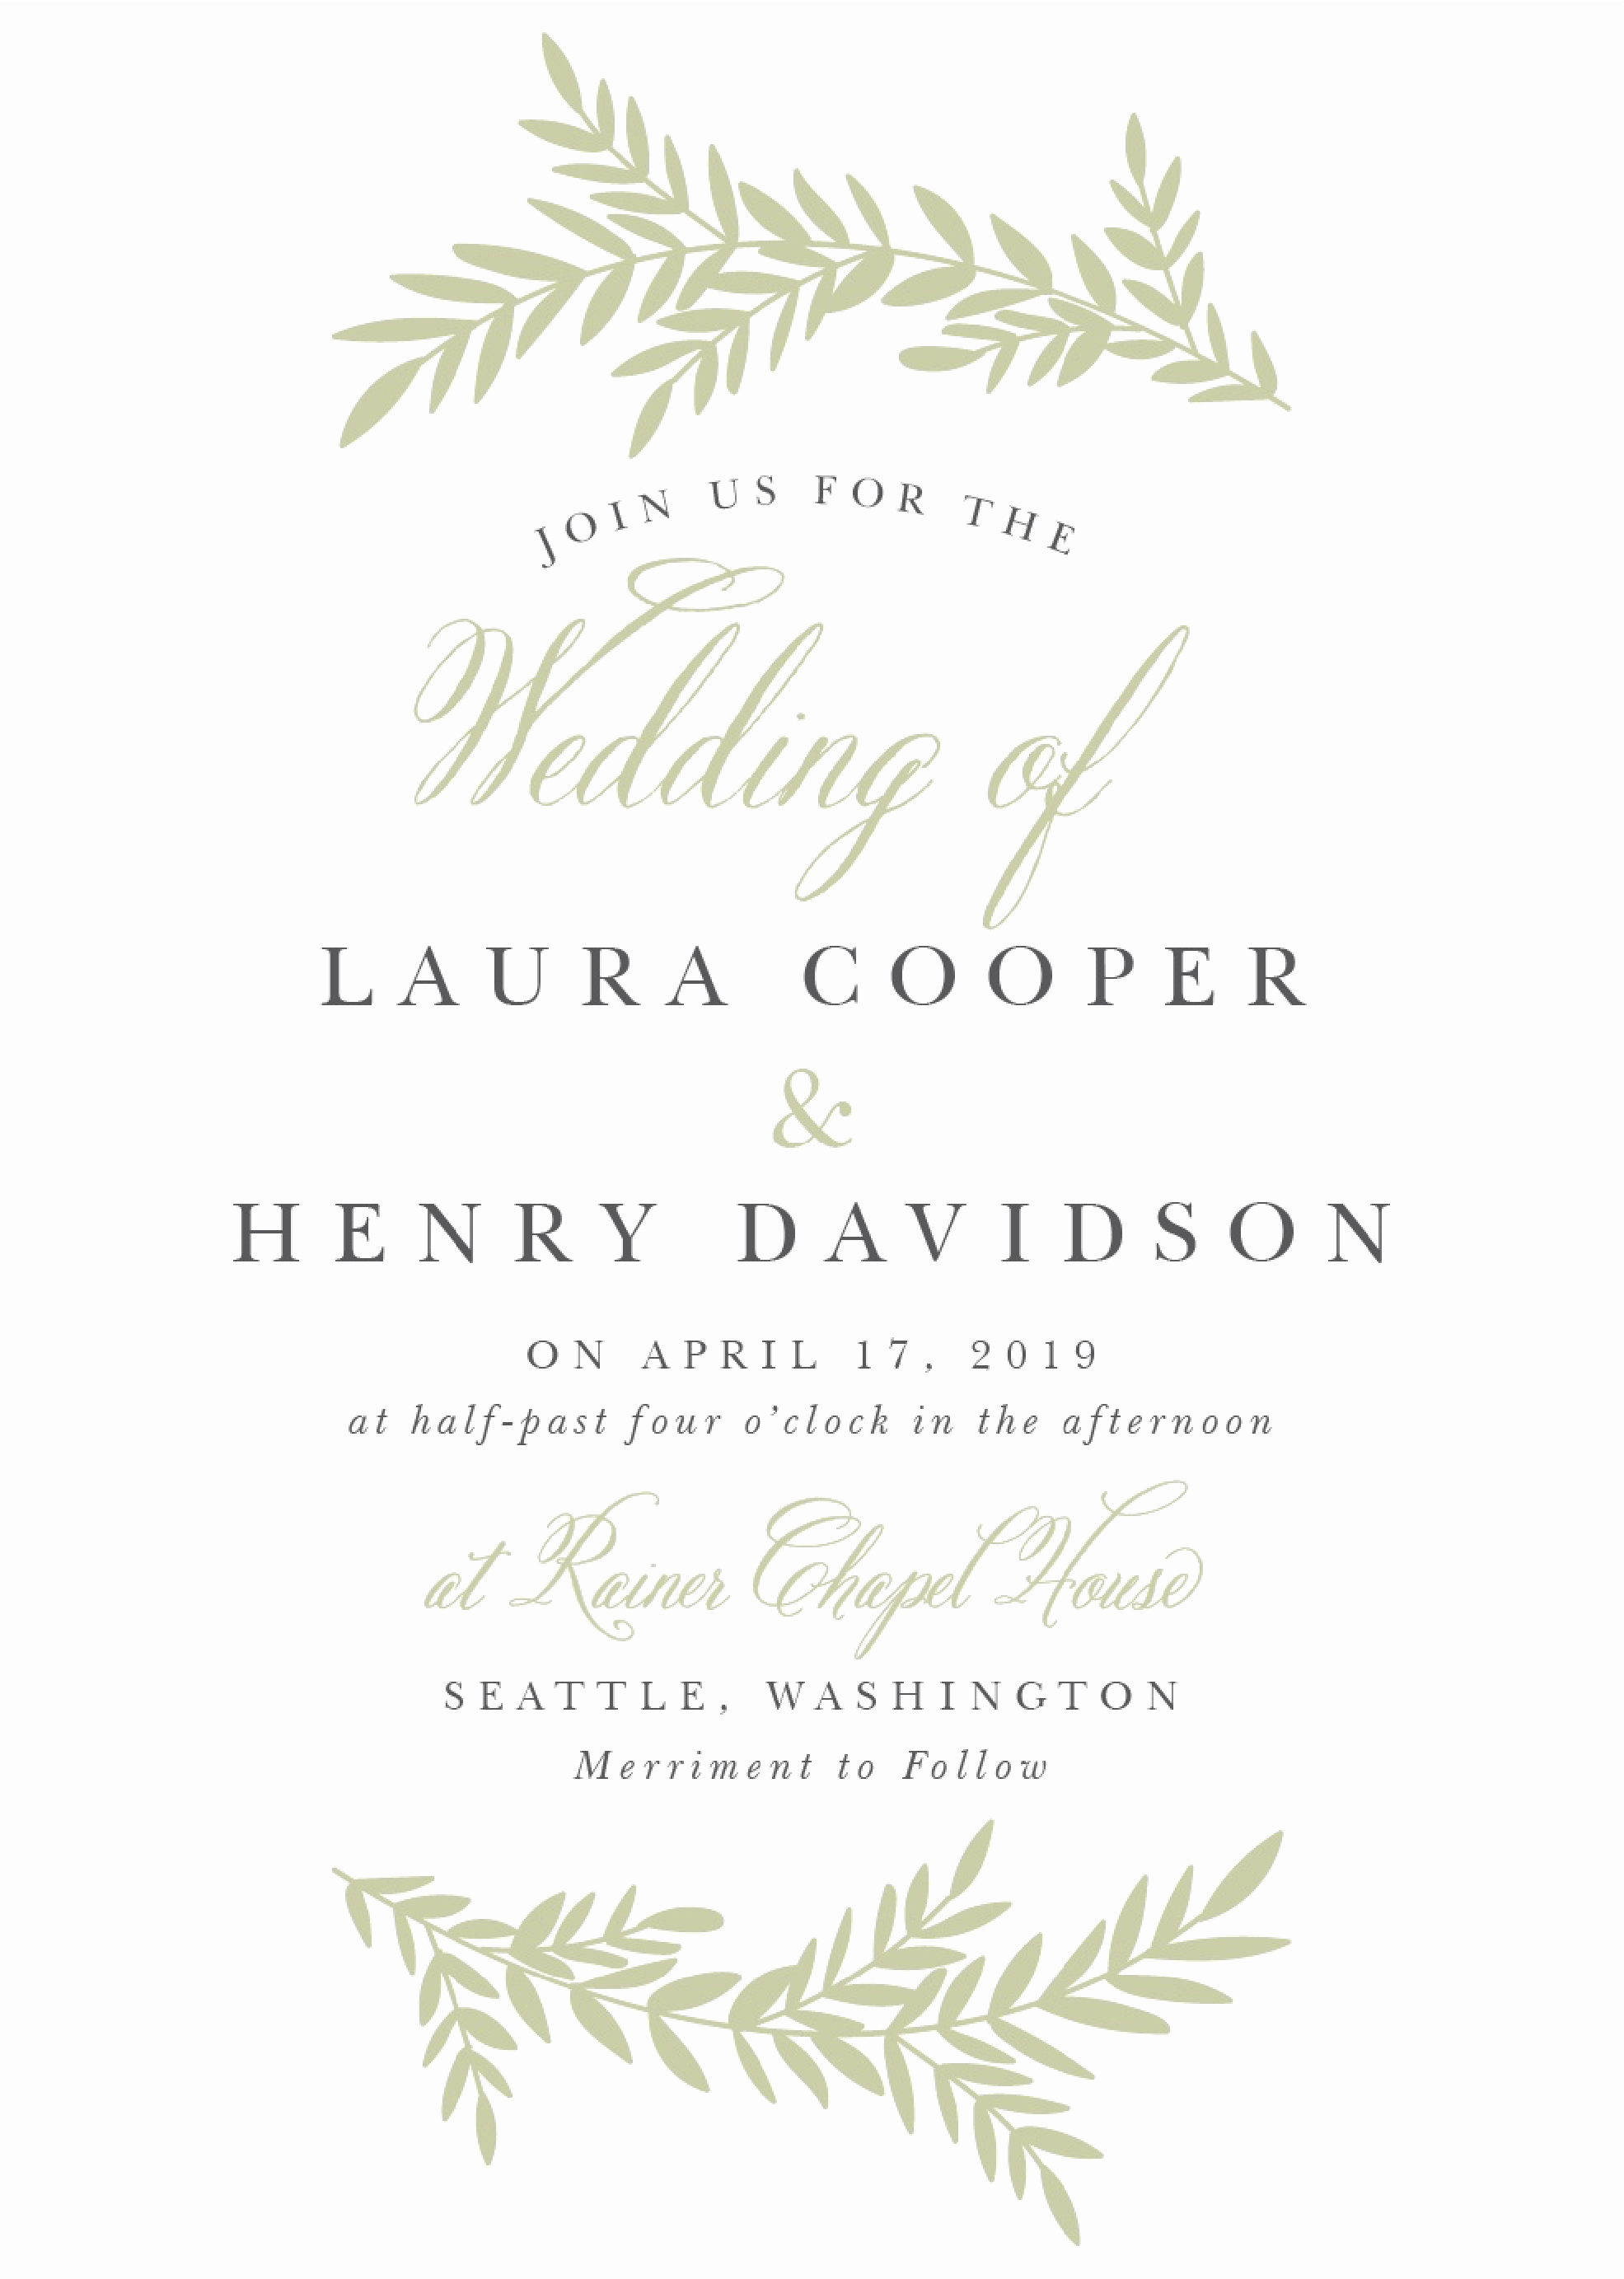 Wedding Welcome Party Invitation Wording Elegant Wedding Invitation Wording Samples